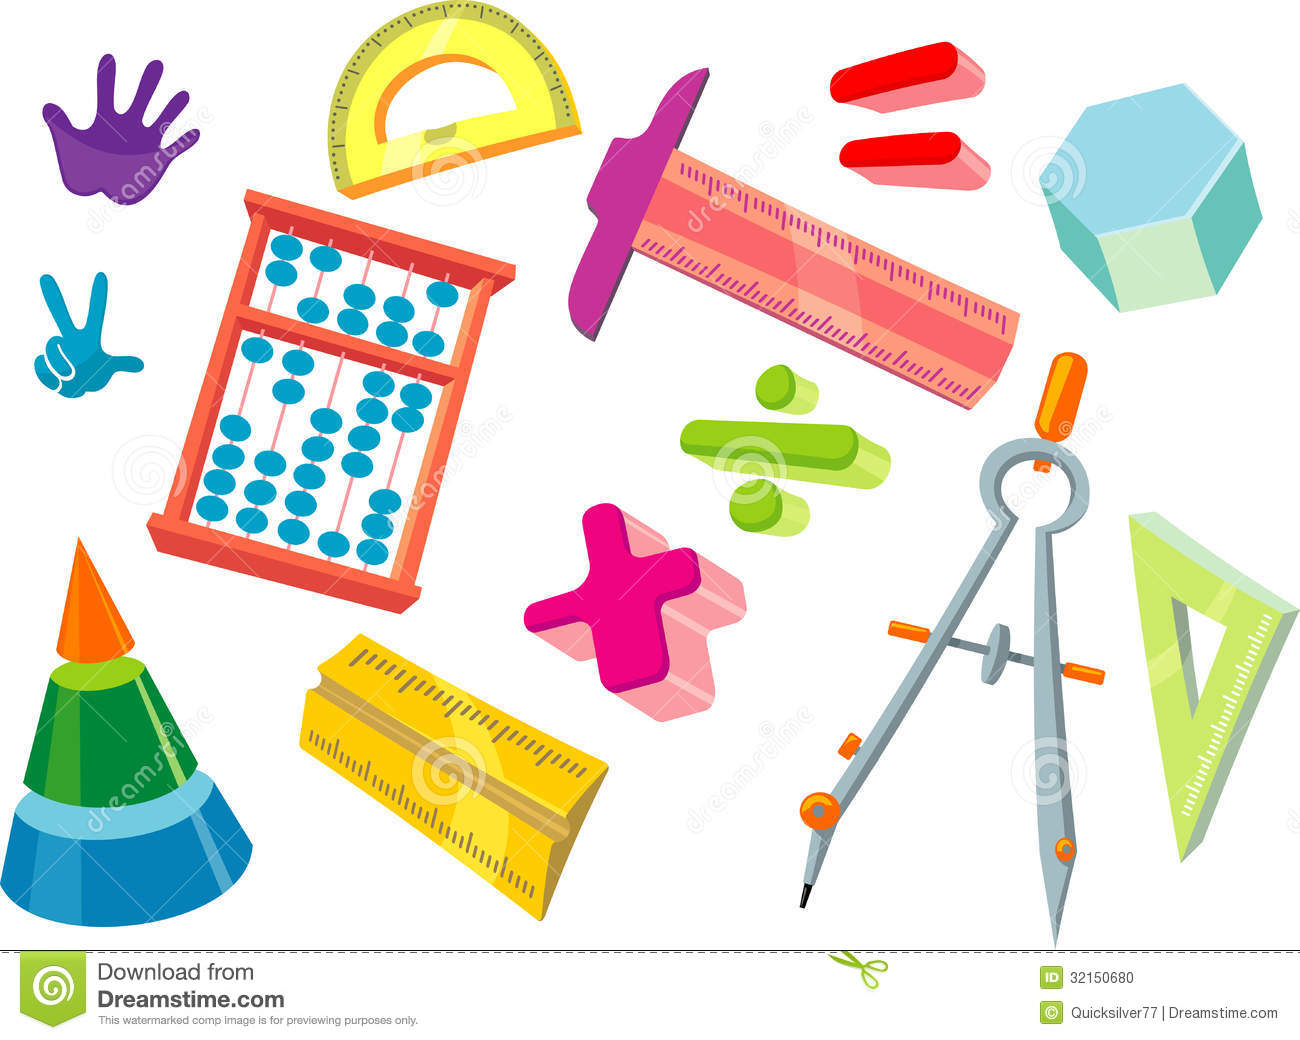 Math tools clipart 4 » Clipart Station.